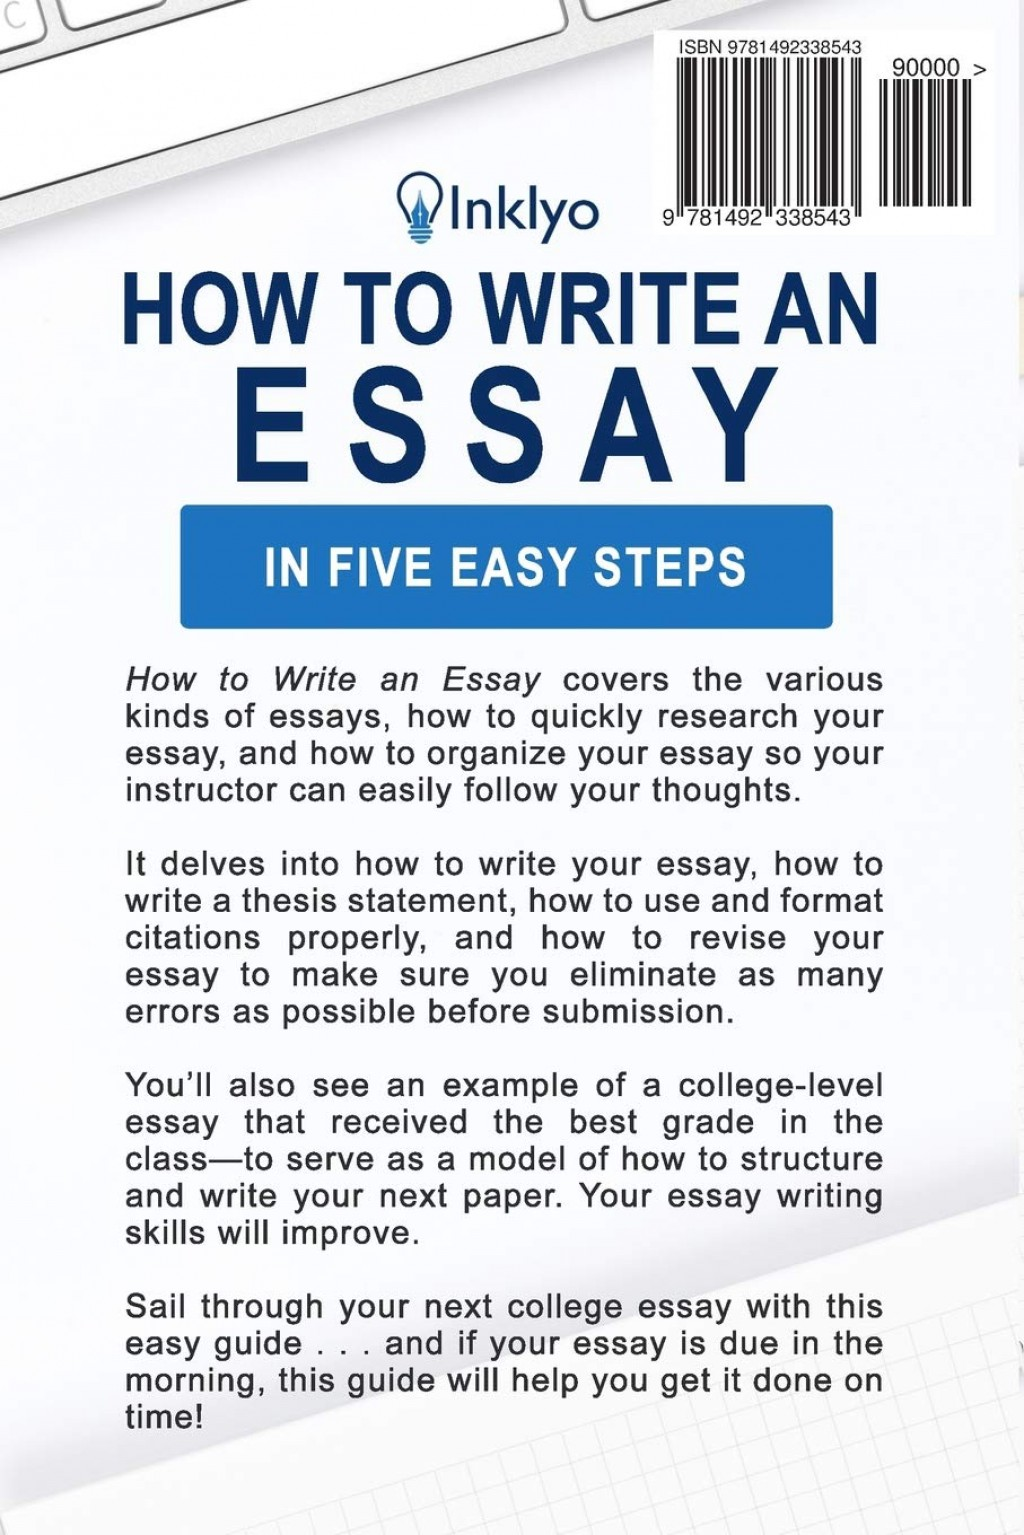 004 Essay Example How To Write And Unique An Paper In Apa Format Conclusion Mla Large